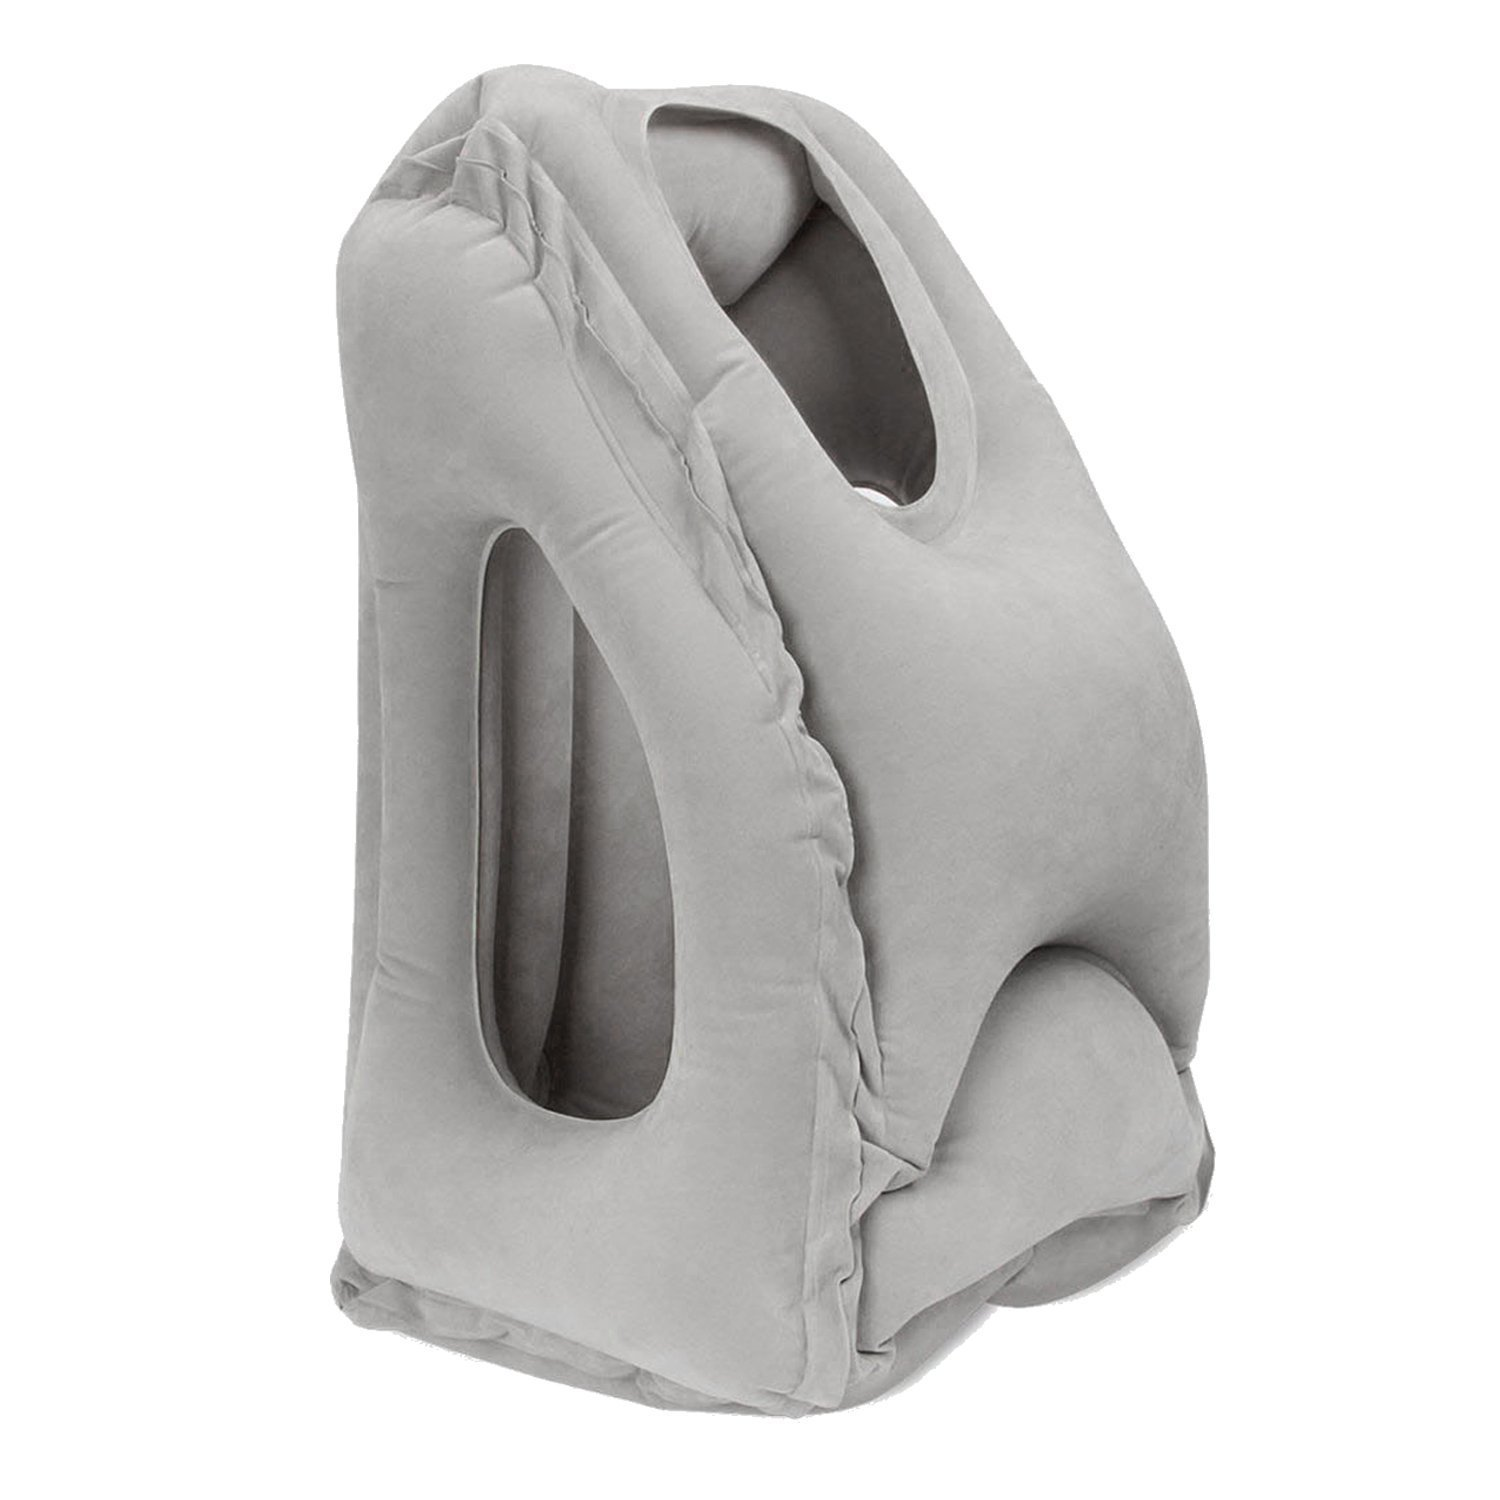 Inflatable Neck Pillow, WOWGO Travel Pillow Airplane Pillow With Arms Comfortable for Outdoor Travelling Camping, Air Planes, Trains, Cars, Buses and Indoor Office Napping [Updated Version] (Gray)